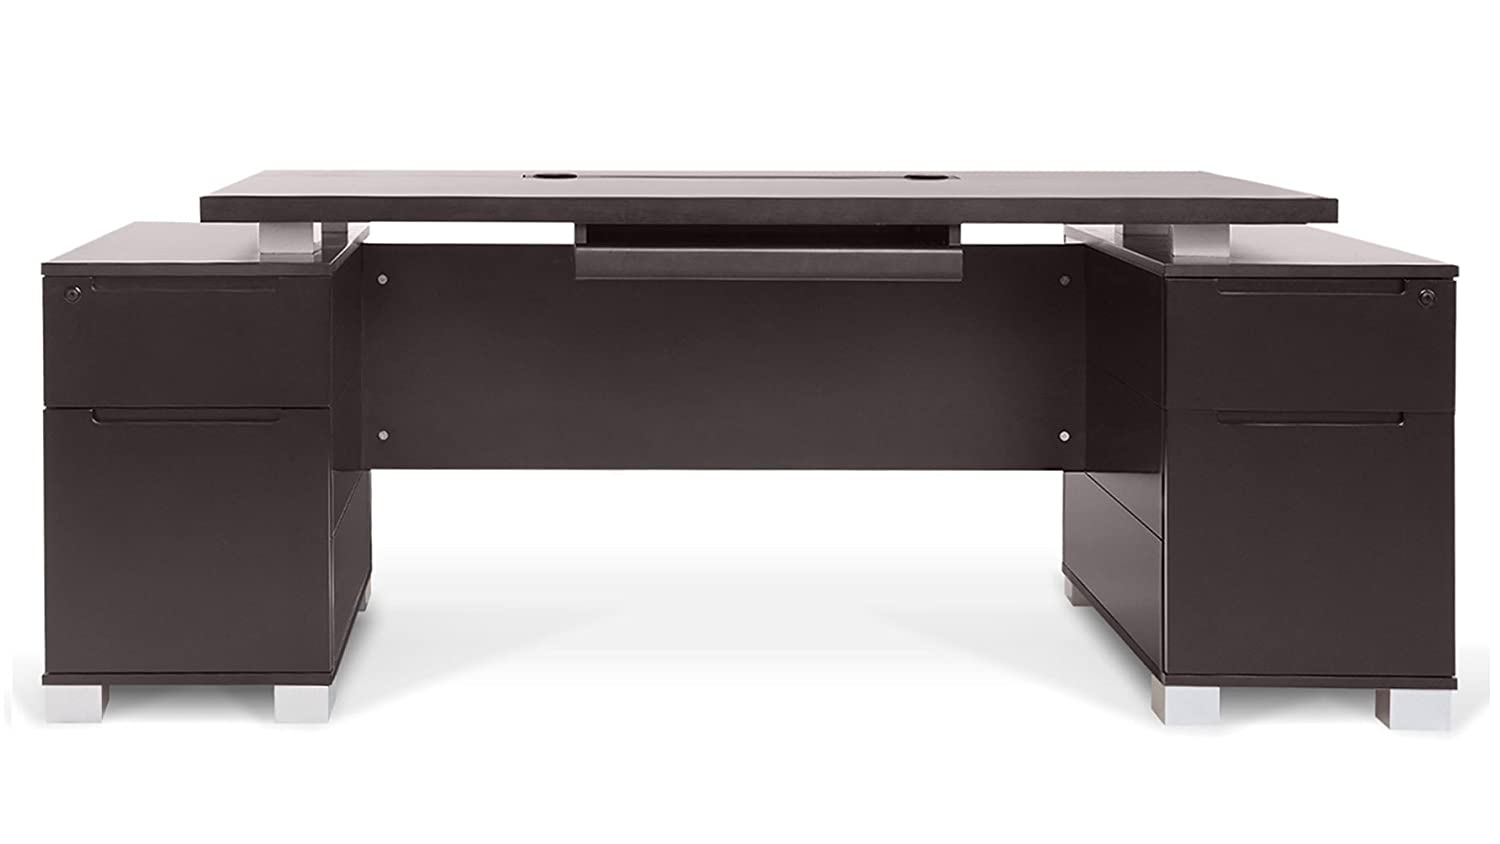 Modern Desk Furniture Home Office modern desk furniture home office stagger ideas beautiful inspiration 20 30 inspirational 23 Amazoncom Ford Executive Modern Desk With Filing Cabinets Dark Wood Finish Kitchen Dining